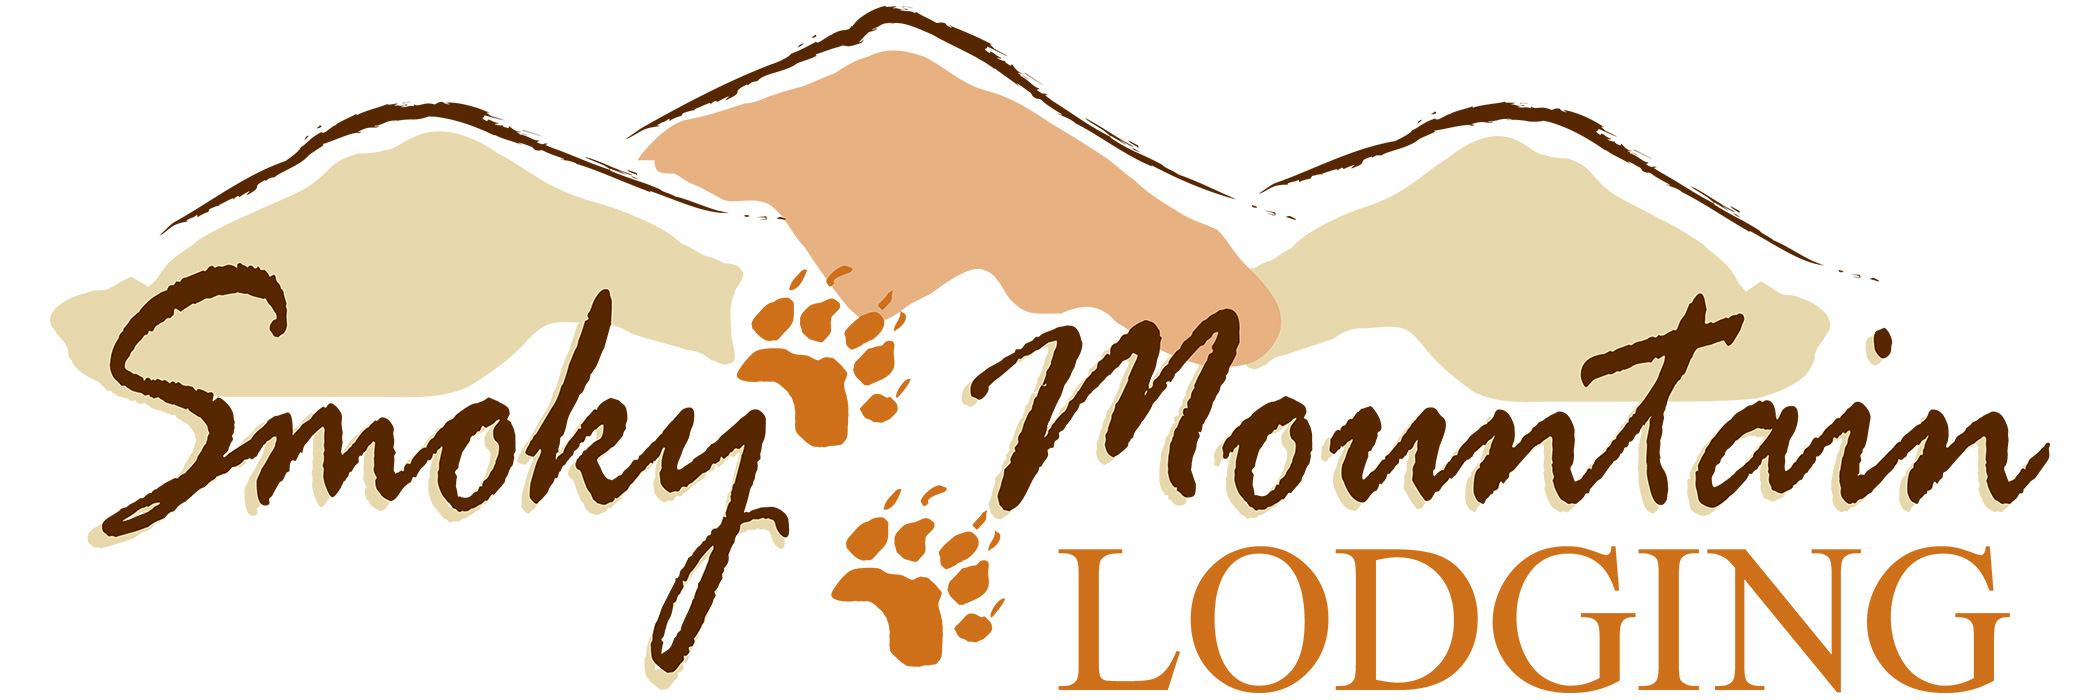 Smoky mountain lodging llc